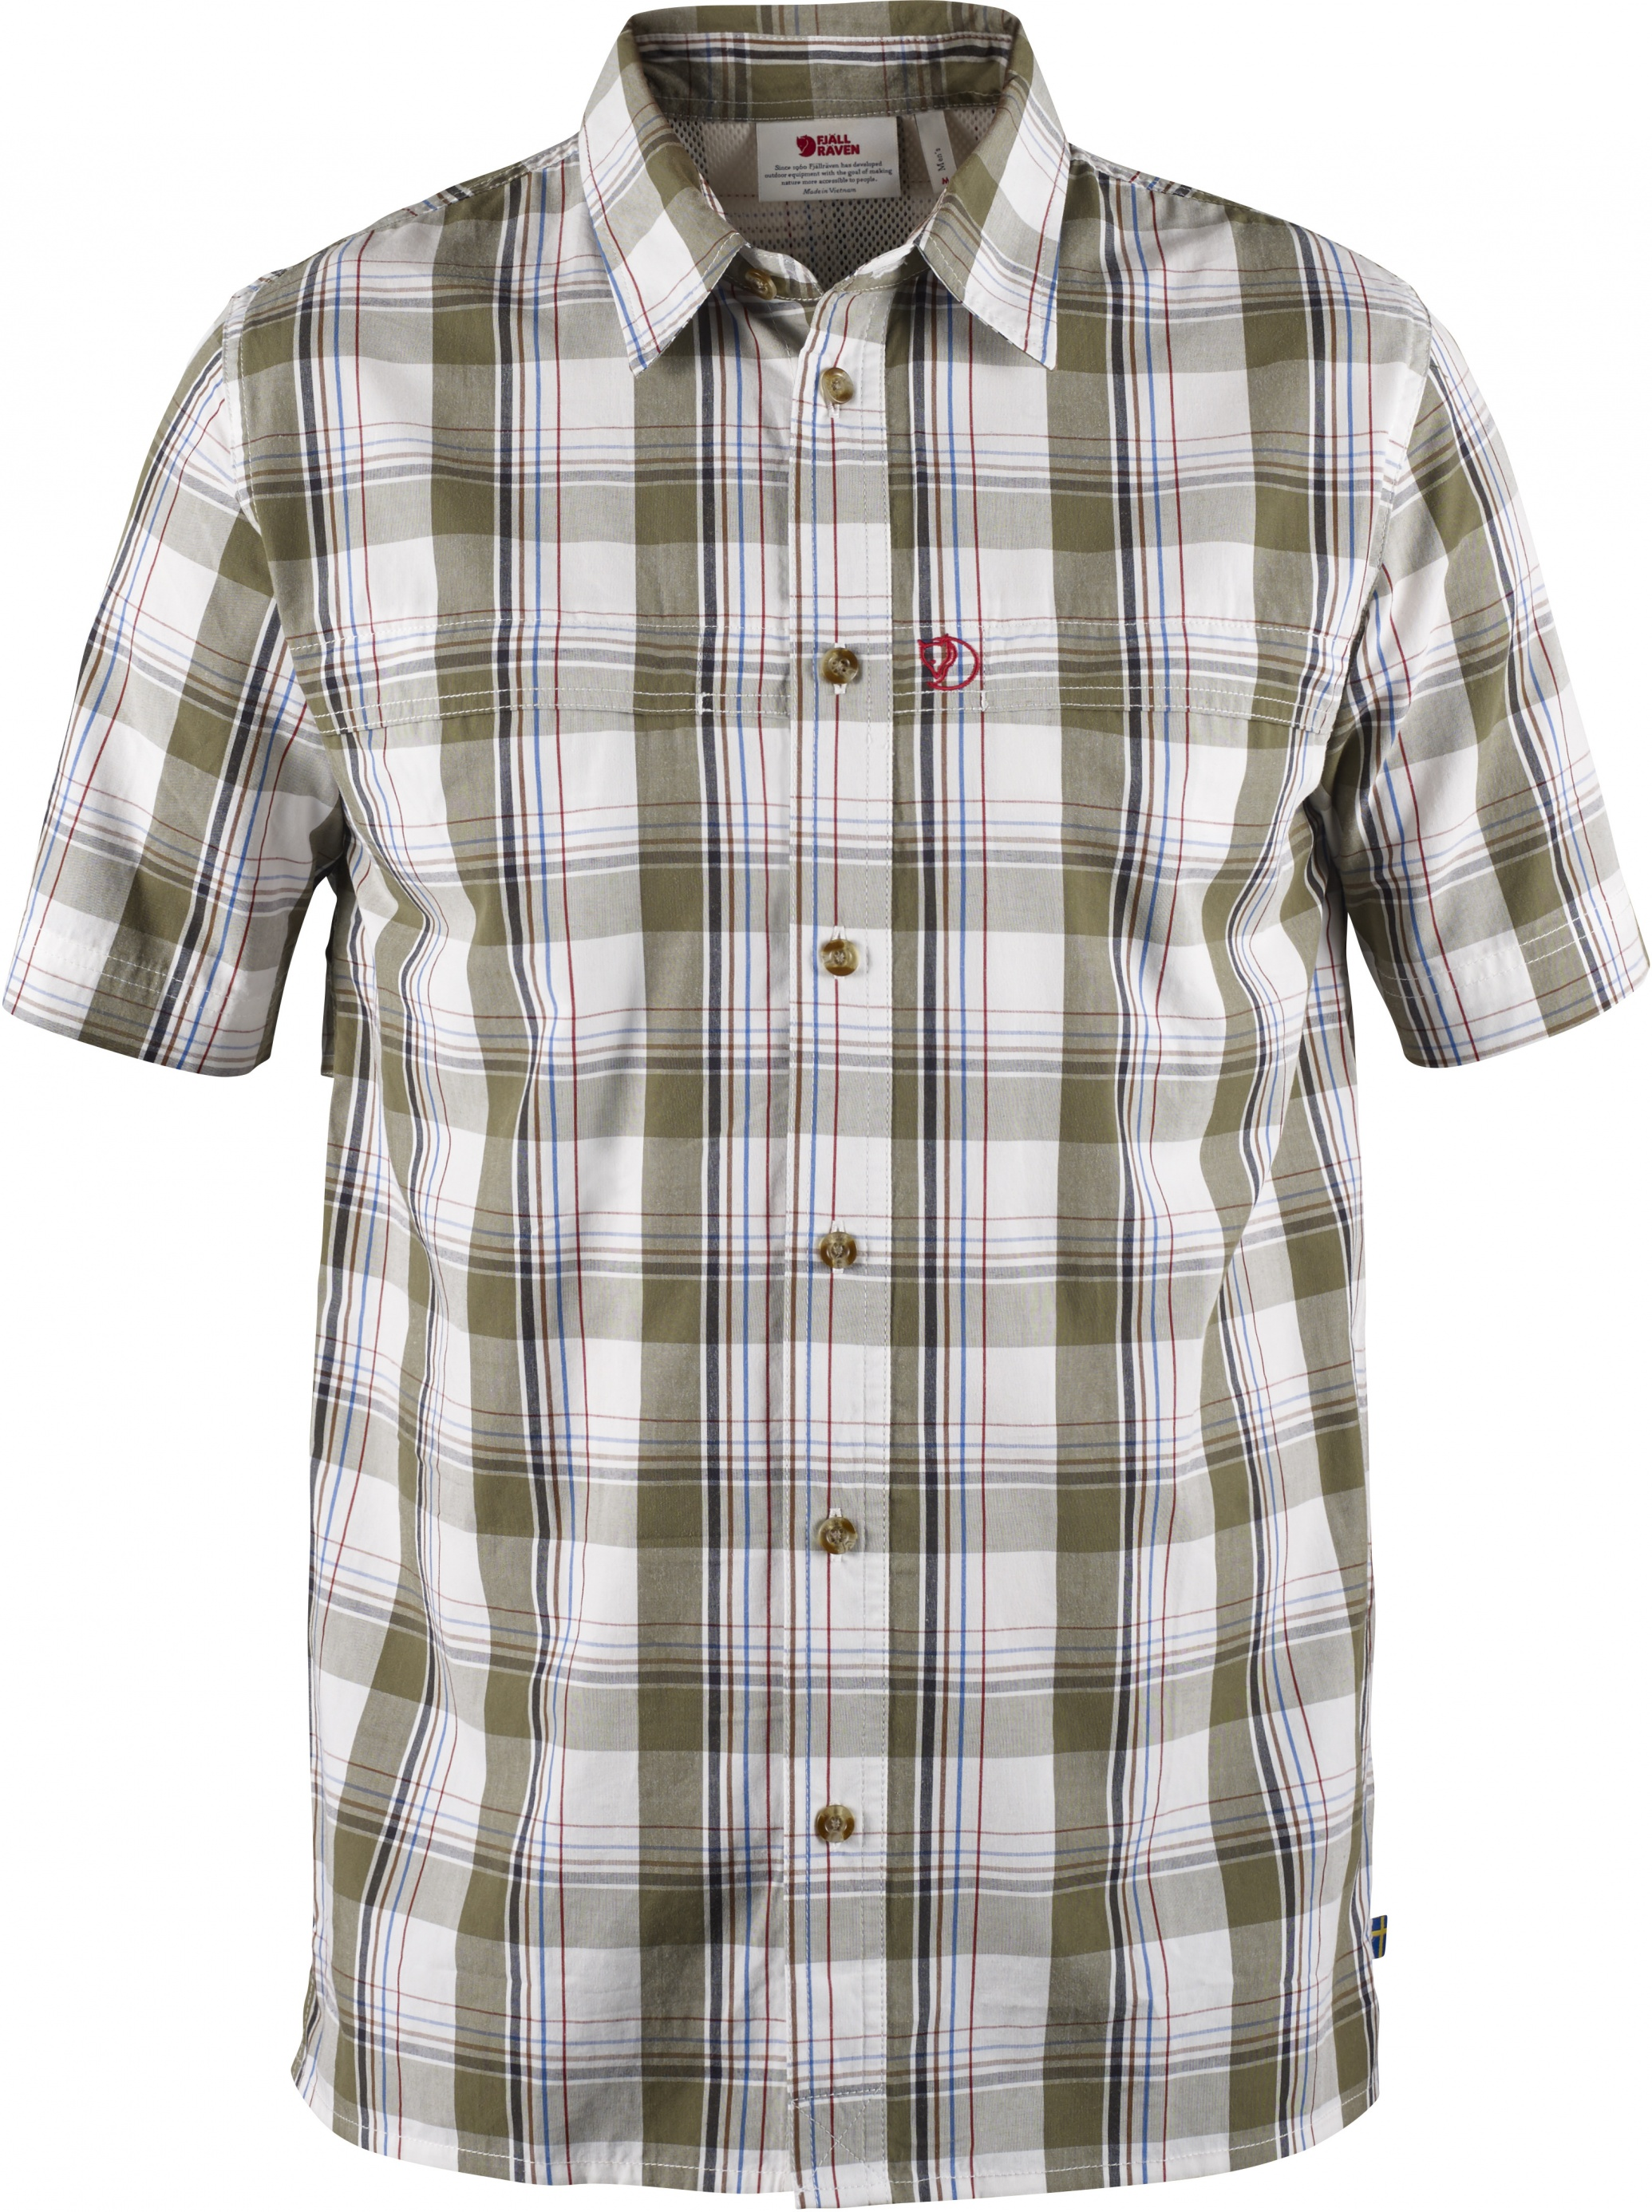 https://www.nepo.sk/tmp/import/products//fjall_raven_gunnar_shirt_tarmac.jpg | Nepo